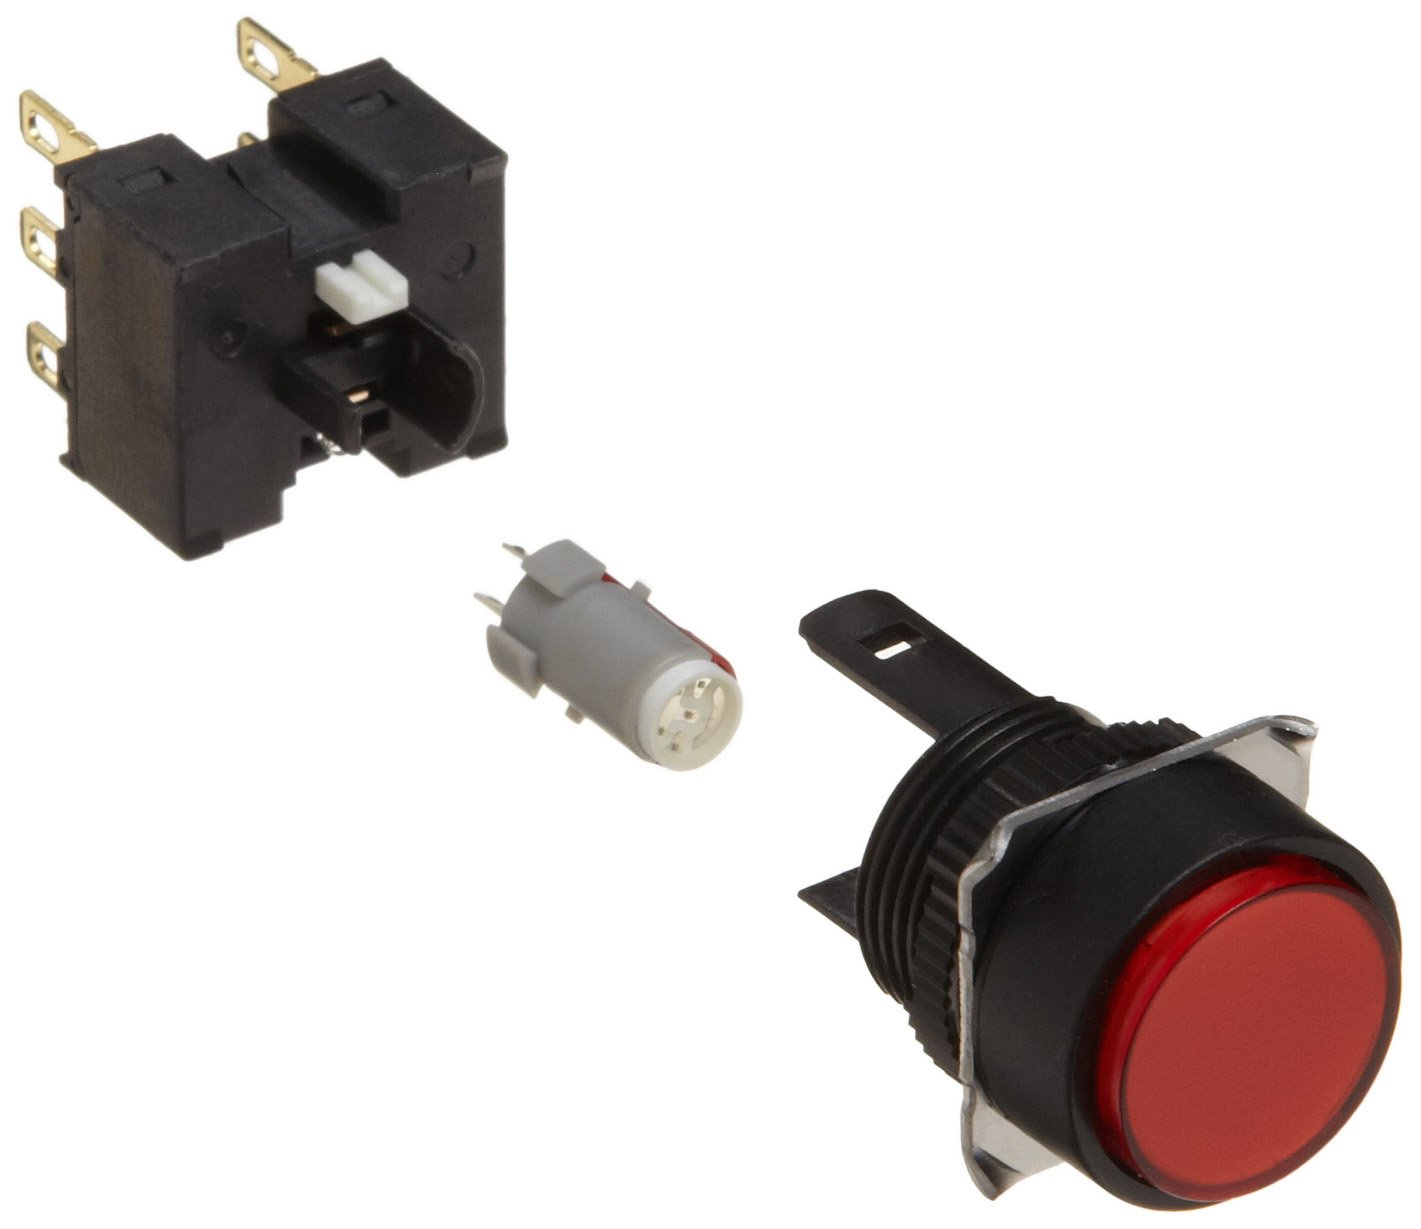 Omron A165L-TRA-24D-2 Projection Type Pushbutton and Switch, Solder Terminal, IP65 Oil-Resistant, 16mm Mounting Aperture, LED Lighted, Alternate Operation, Round, Red, 24 VDC Rated Voltage, Double Pole Double Throw Contacts